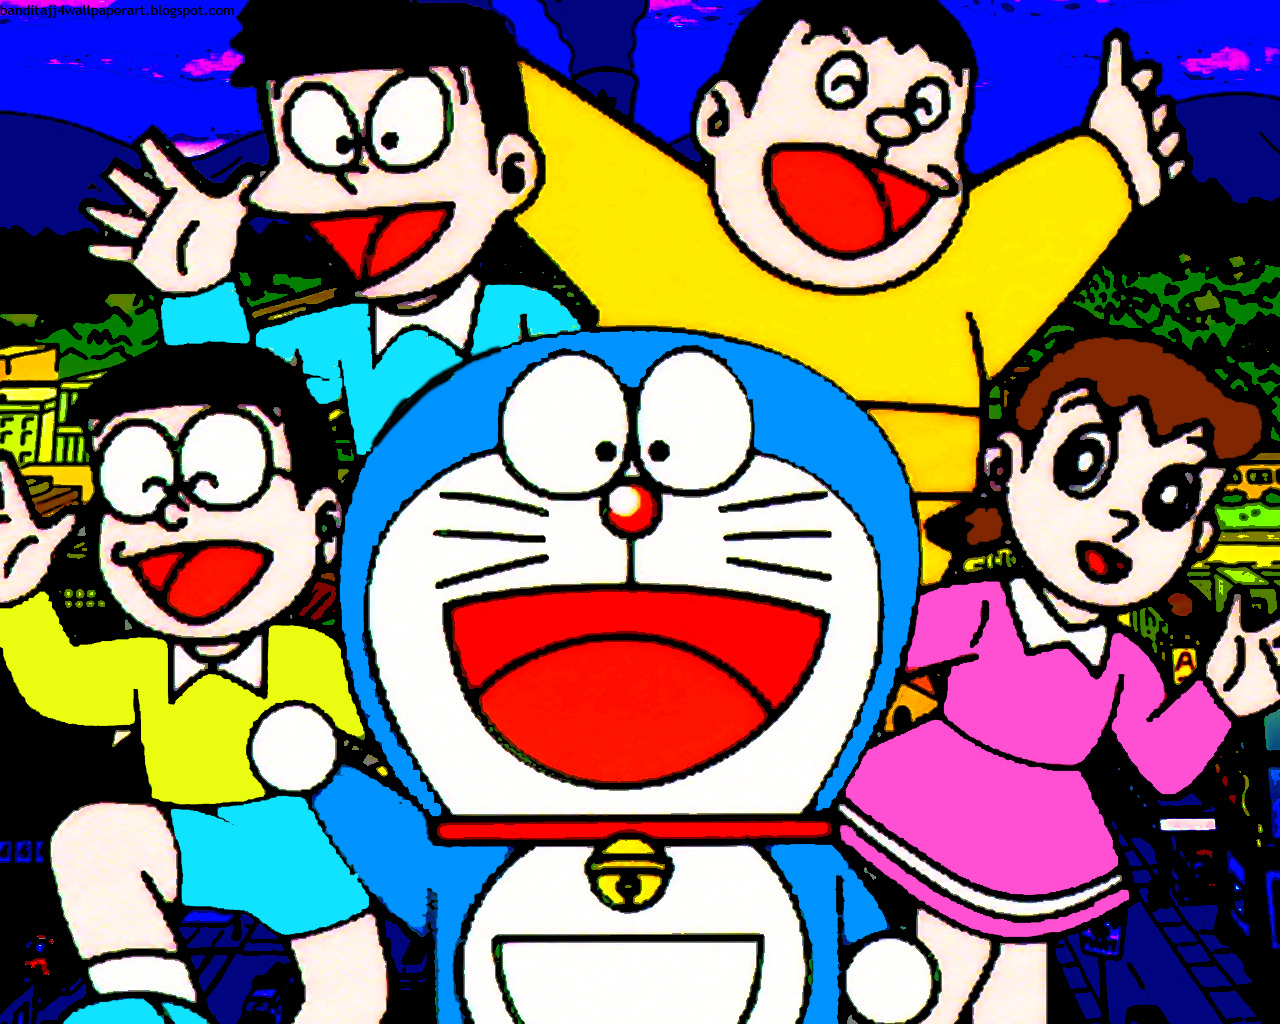 doraemon legend, final part doraemon, doraemon and nobita, NObita And